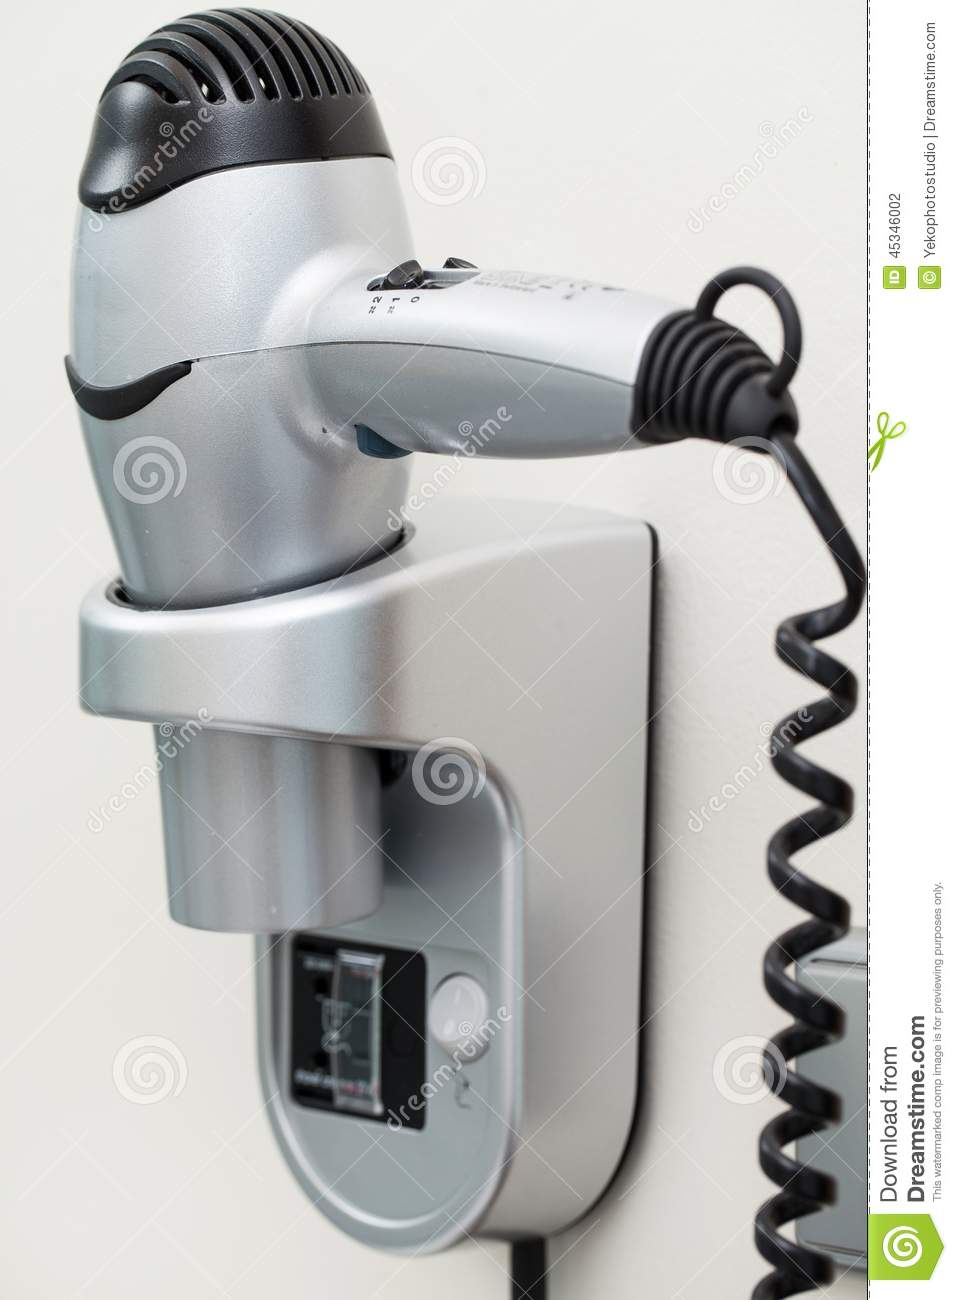 hairdryer with cord attached to a wall stock photo image 45346002. Black Bedroom Furniture Sets. Home Design Ideas